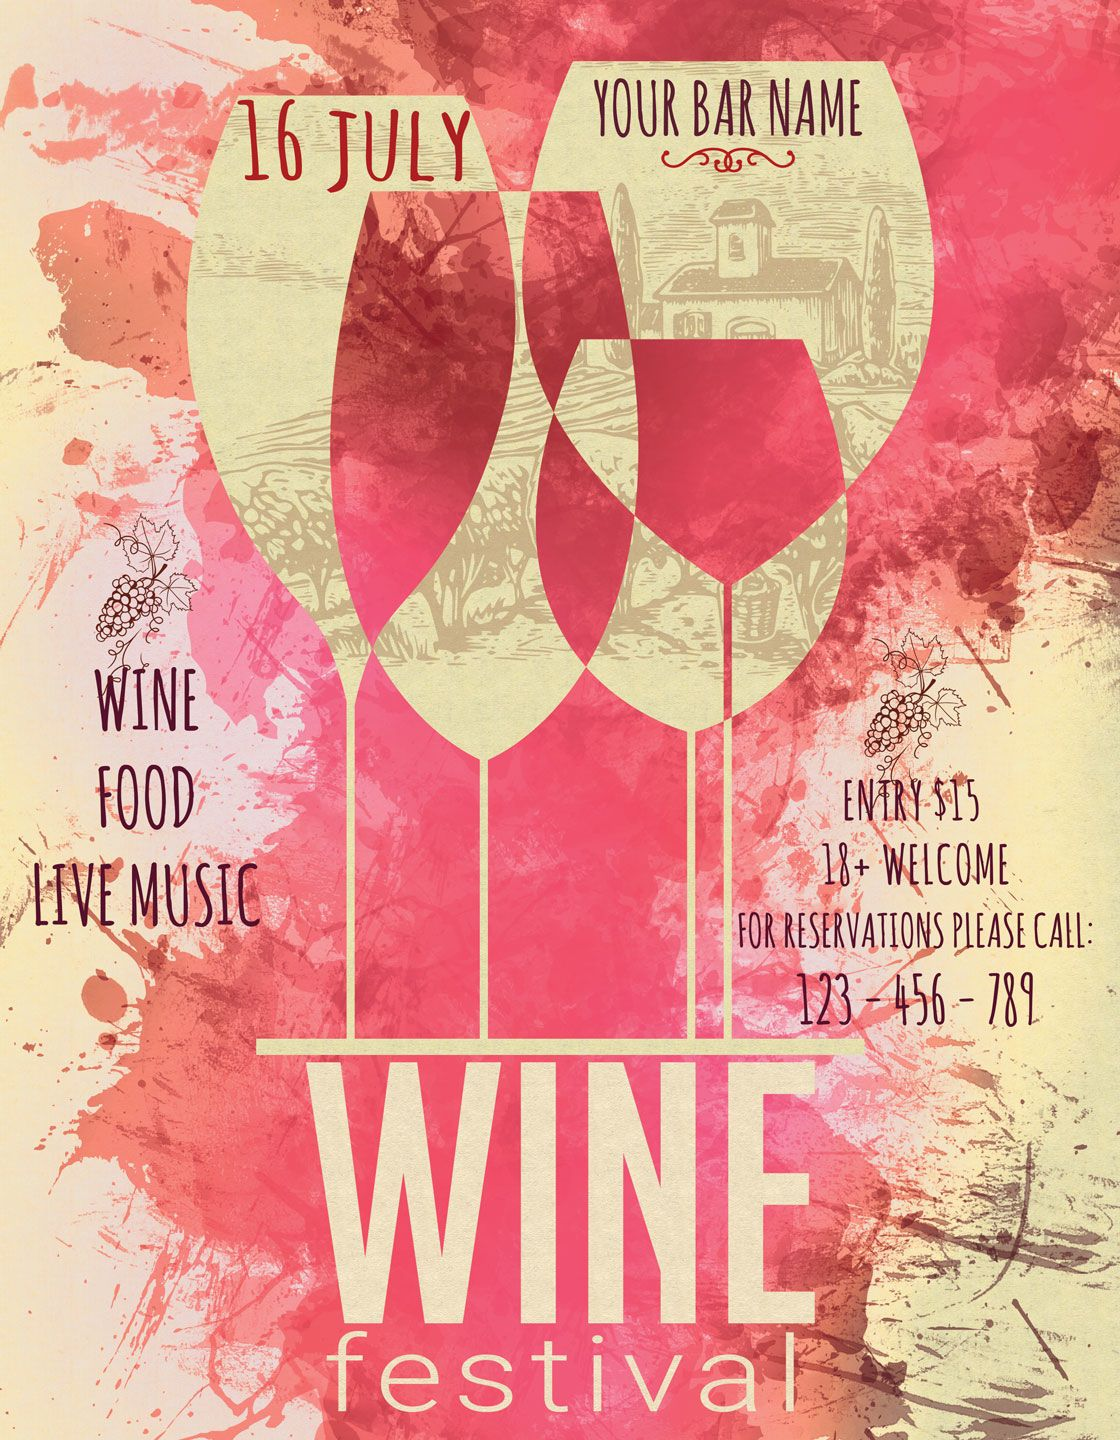 Wine Festival Flyer Poster Vintage By Artolus Thehungryjpeg Com Flyer Ad Festival Wine Poster Adver Wine Festival Festival Flyer Wine Travel